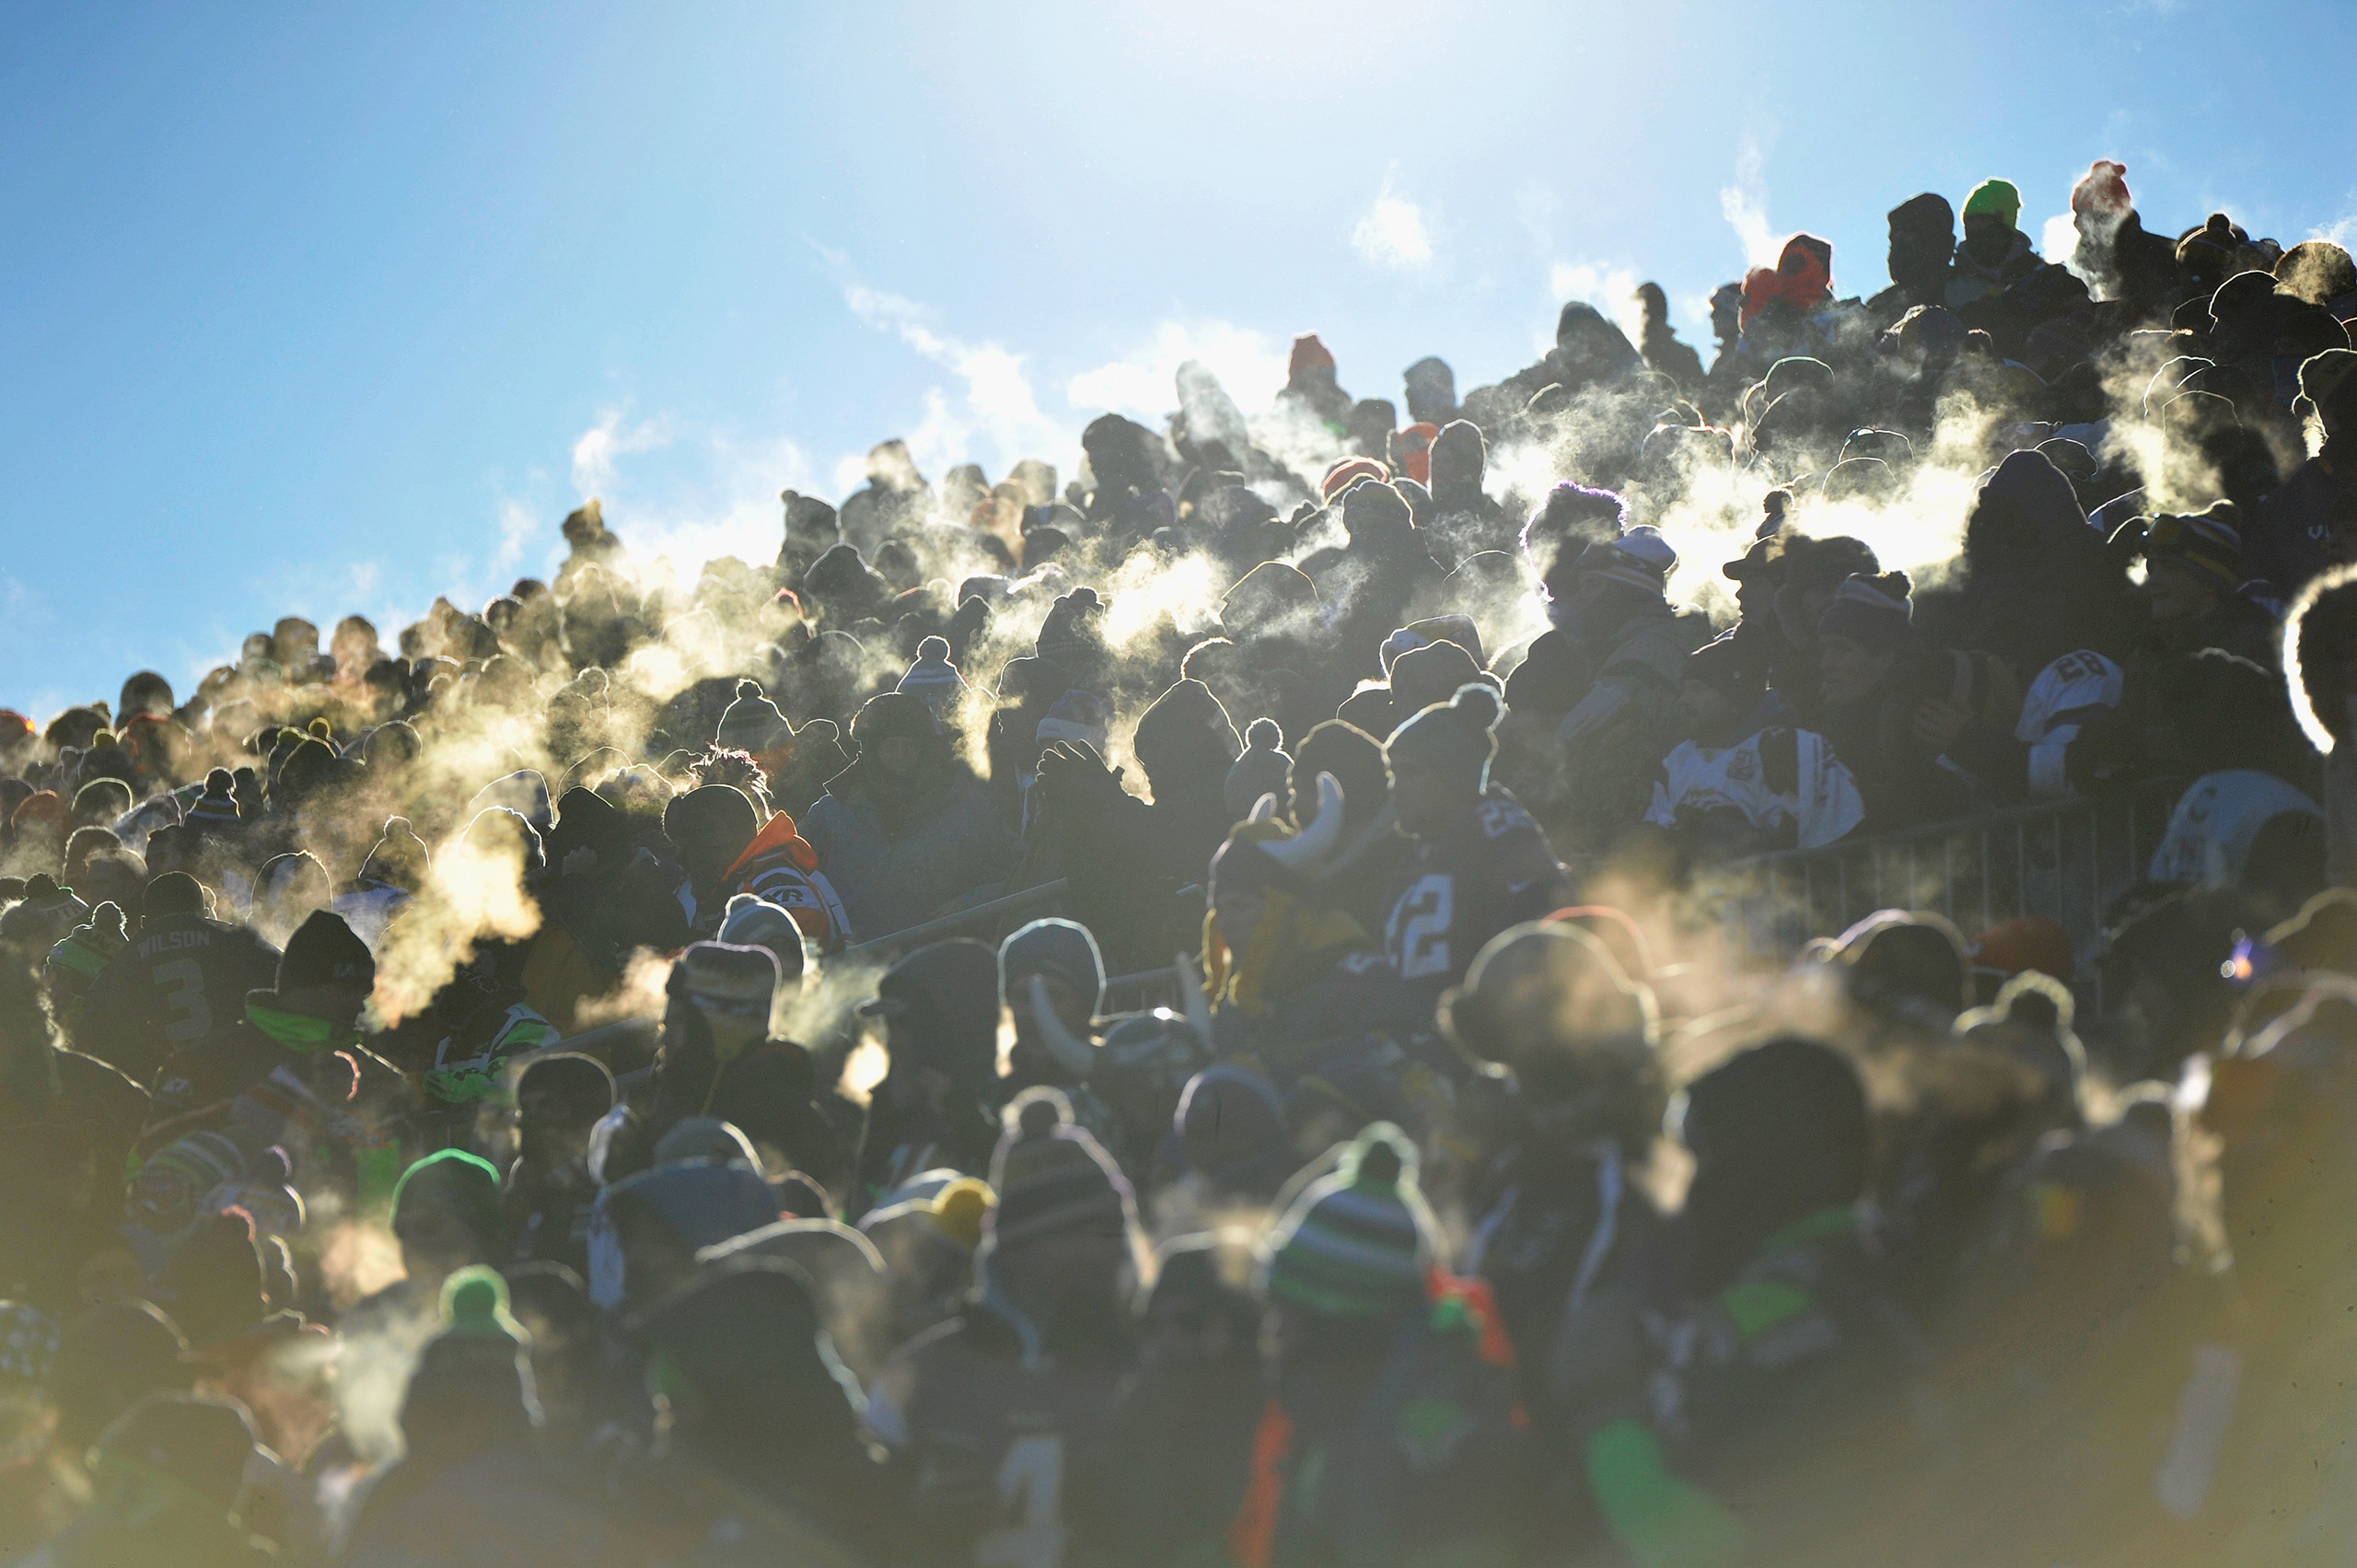 Fans during the NFC Wild Card Playoff game between the Minnesota Vikings and the Seattle Seahawks at TCFBank Stadium in Minneapolis, Minnesota, on Jan. 10, 2016.